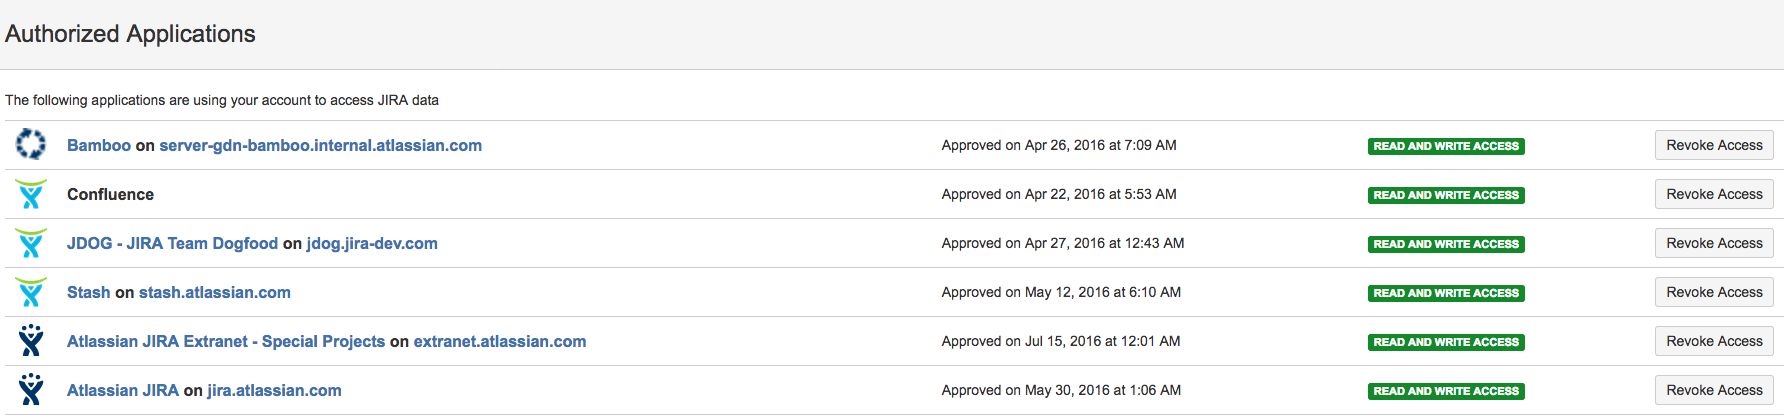 List of authorized applications.